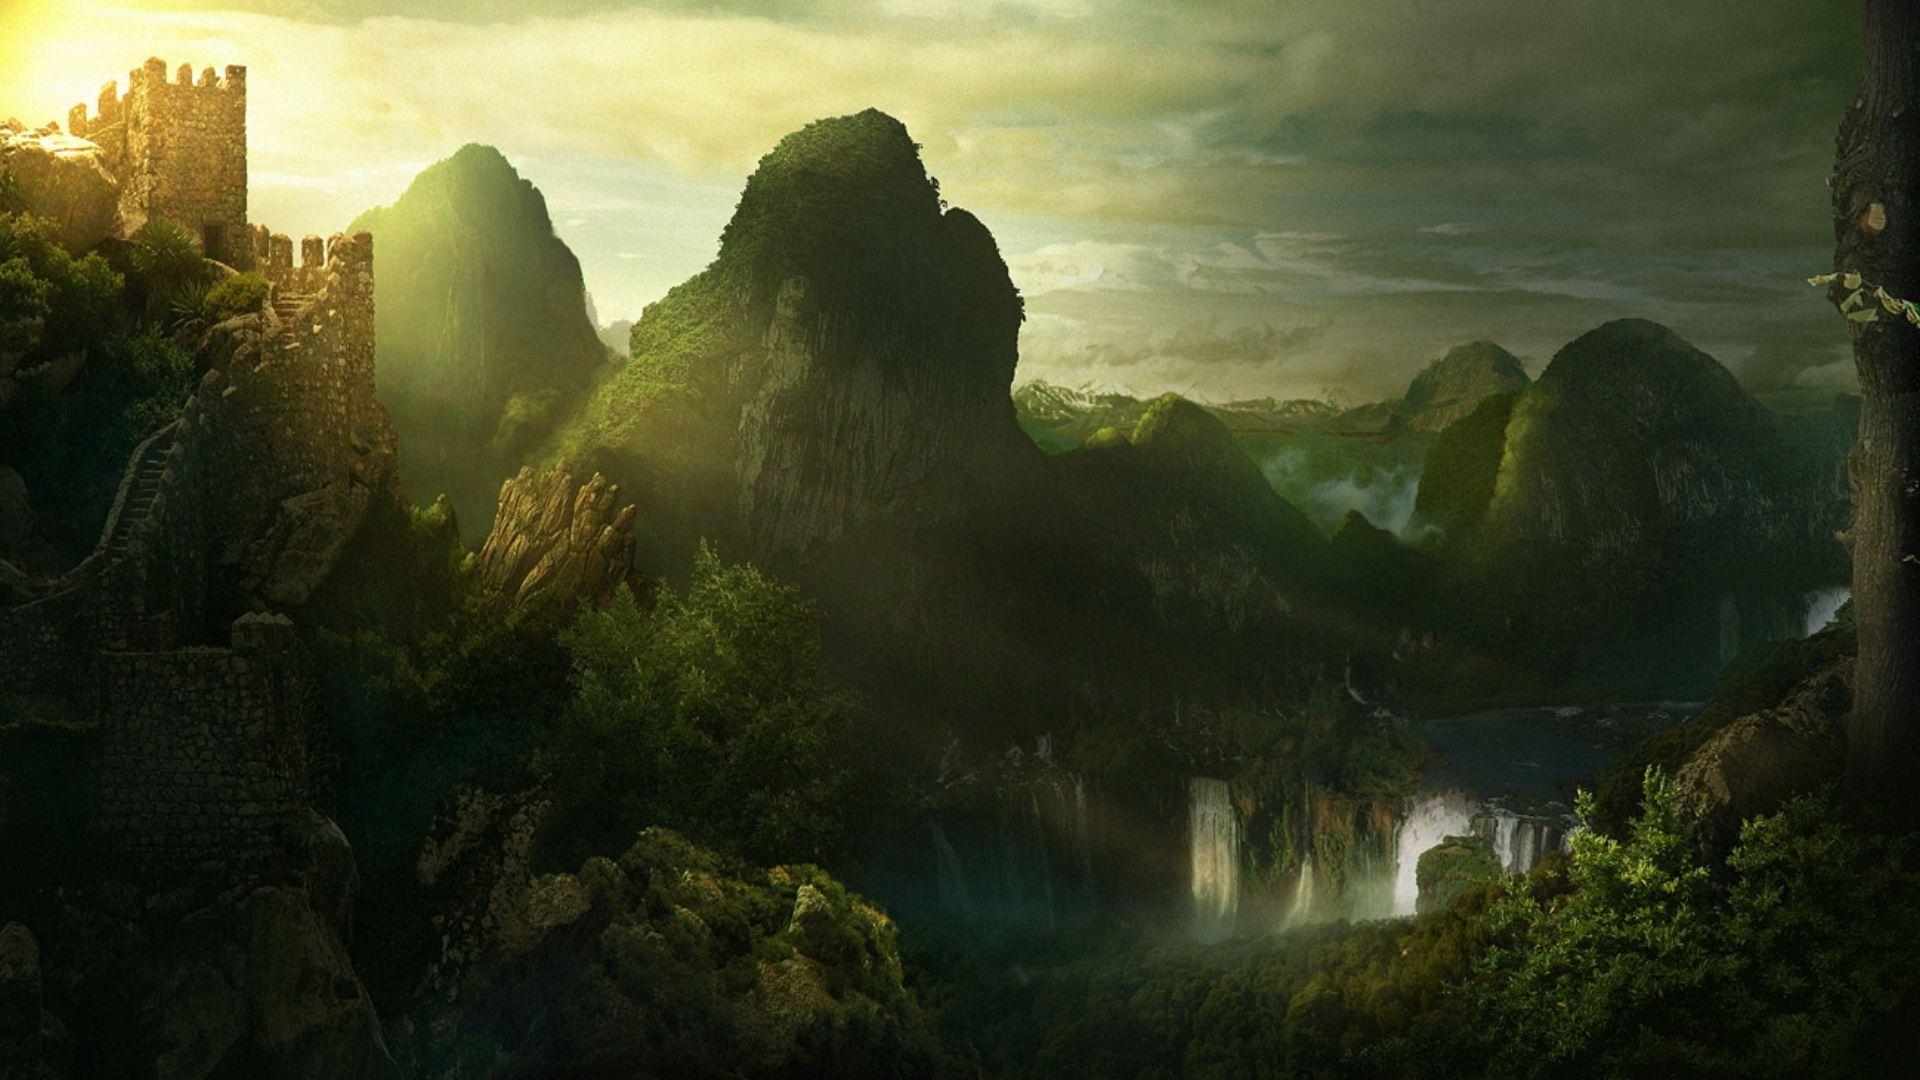 Stunning Hd Fantasy Gaming Desktop Wallpapers: Fantasy Landscape Wallpapers